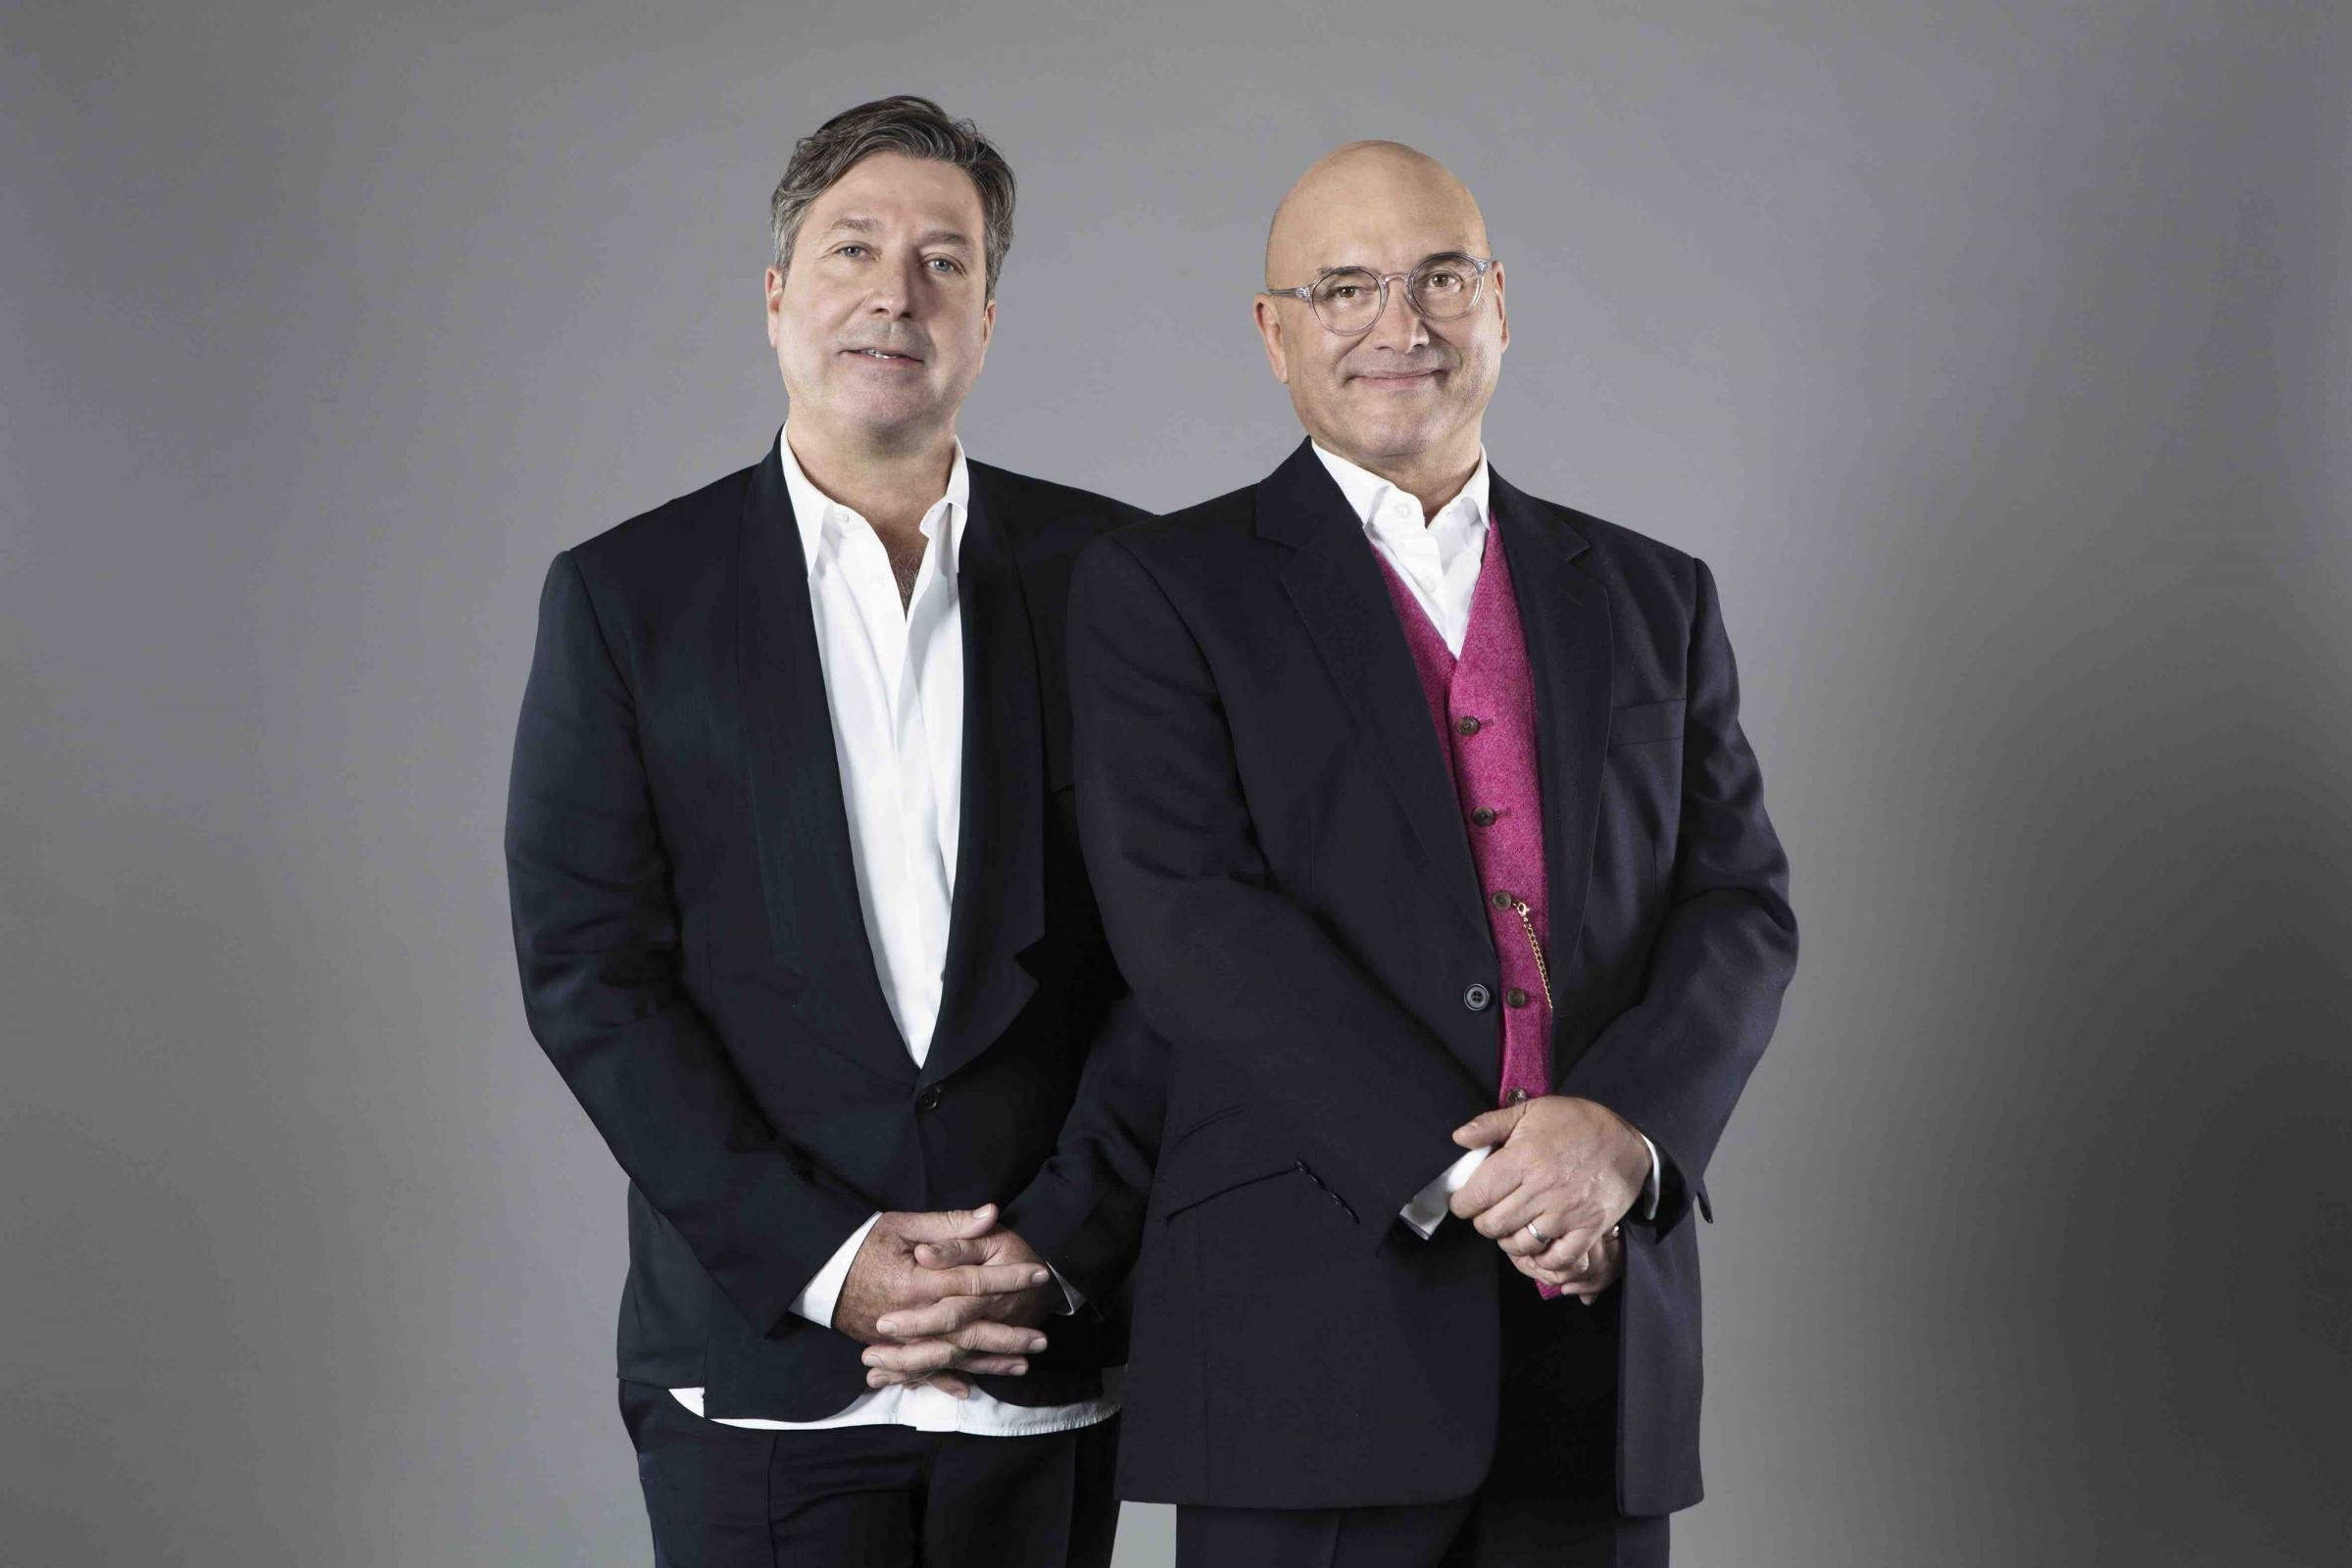 MasterChef judges John Torode (left) and Gregg Wallace